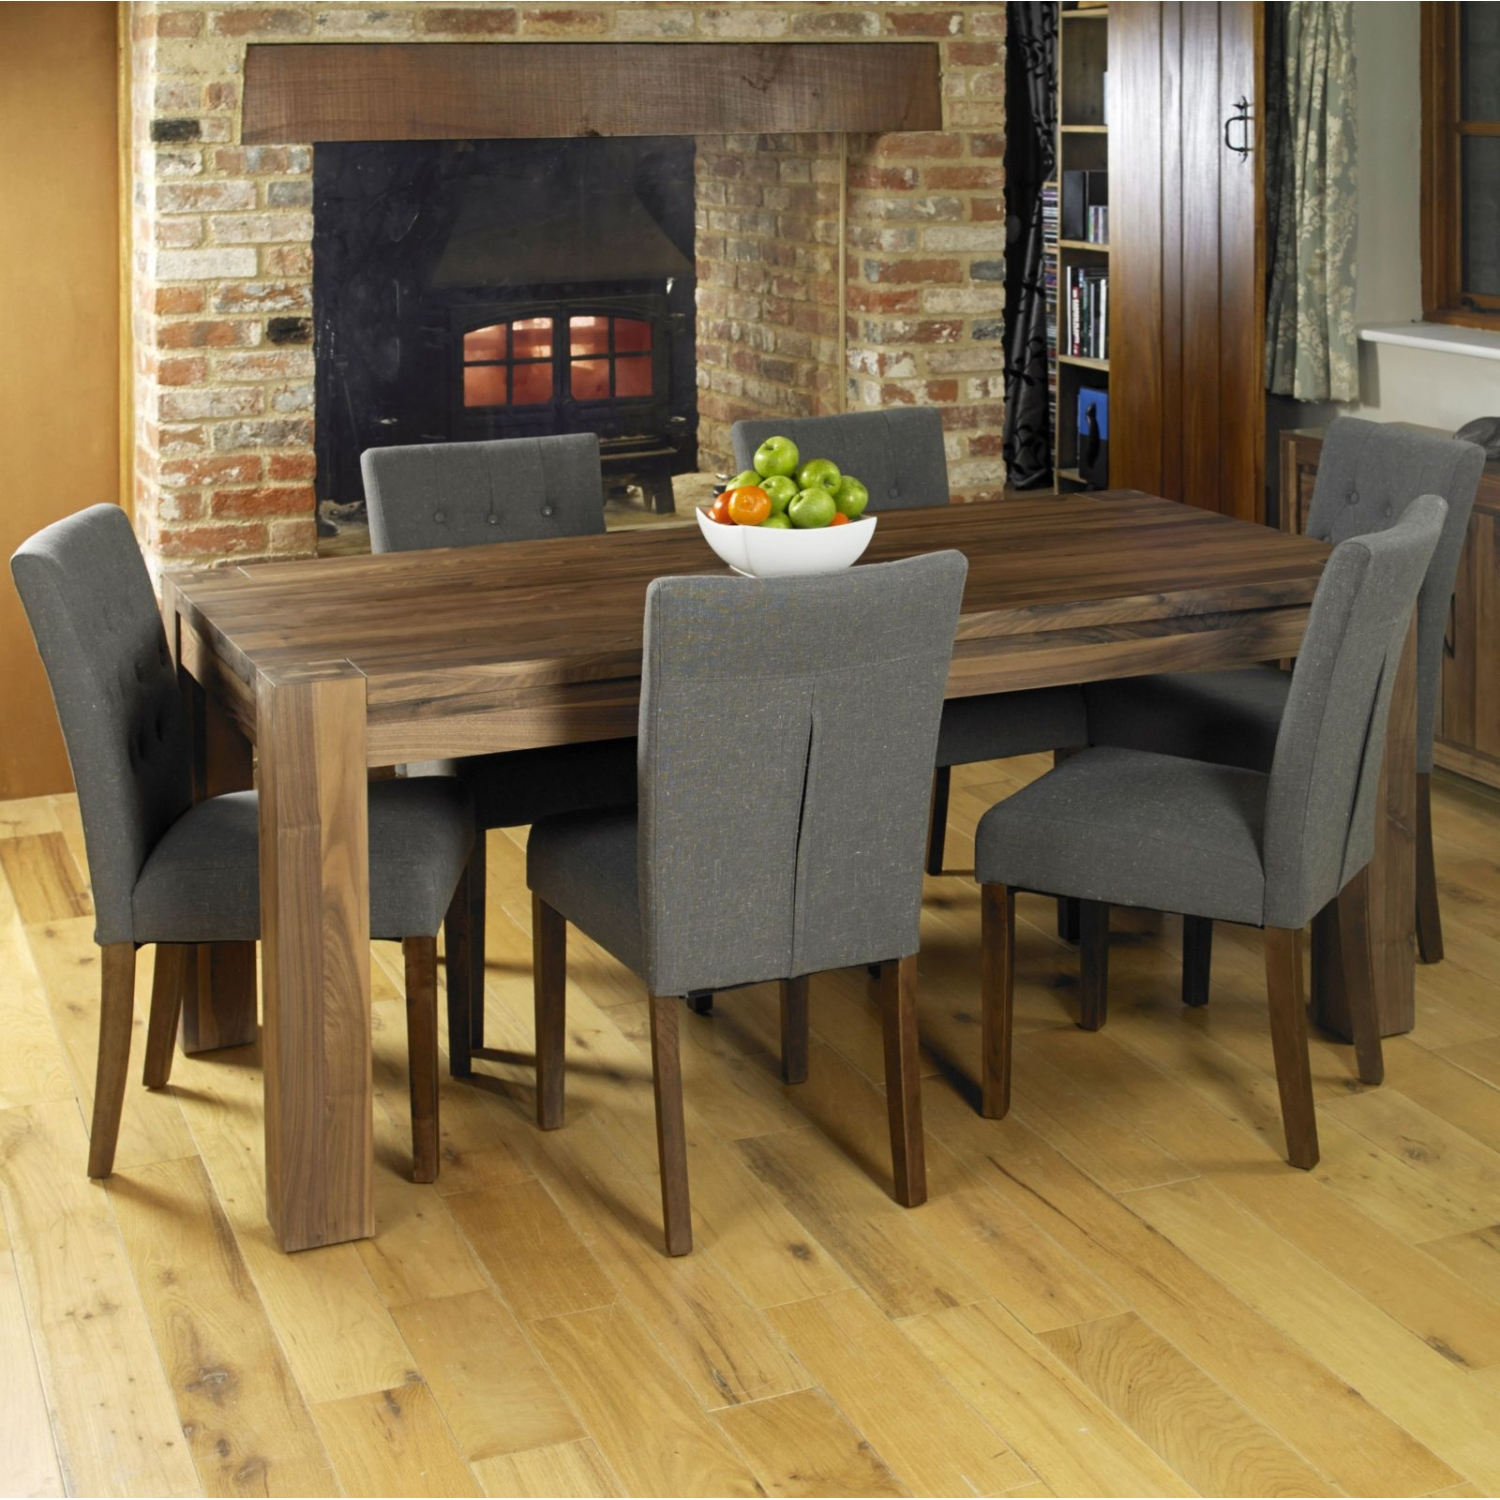 linea walnut dark wood furniture large dining table and six chairs set